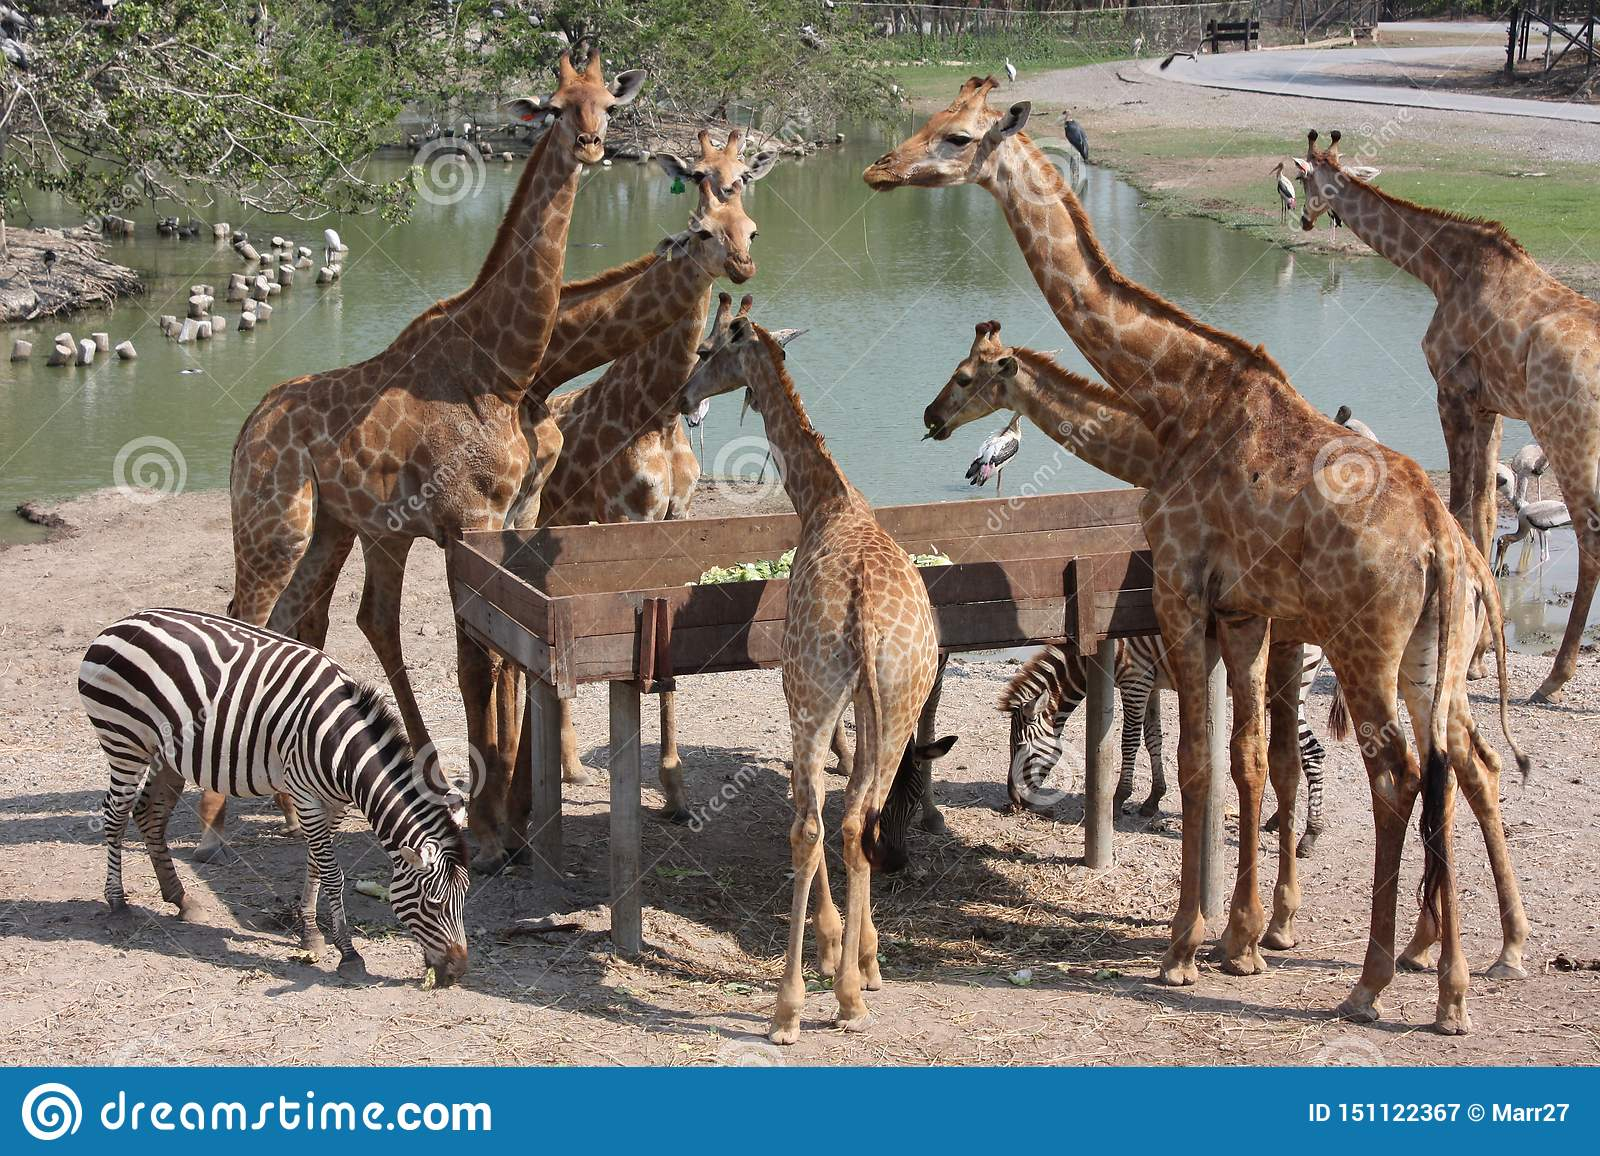 Lunch Giraffes And Zebras Zoo Thailand Stock Image